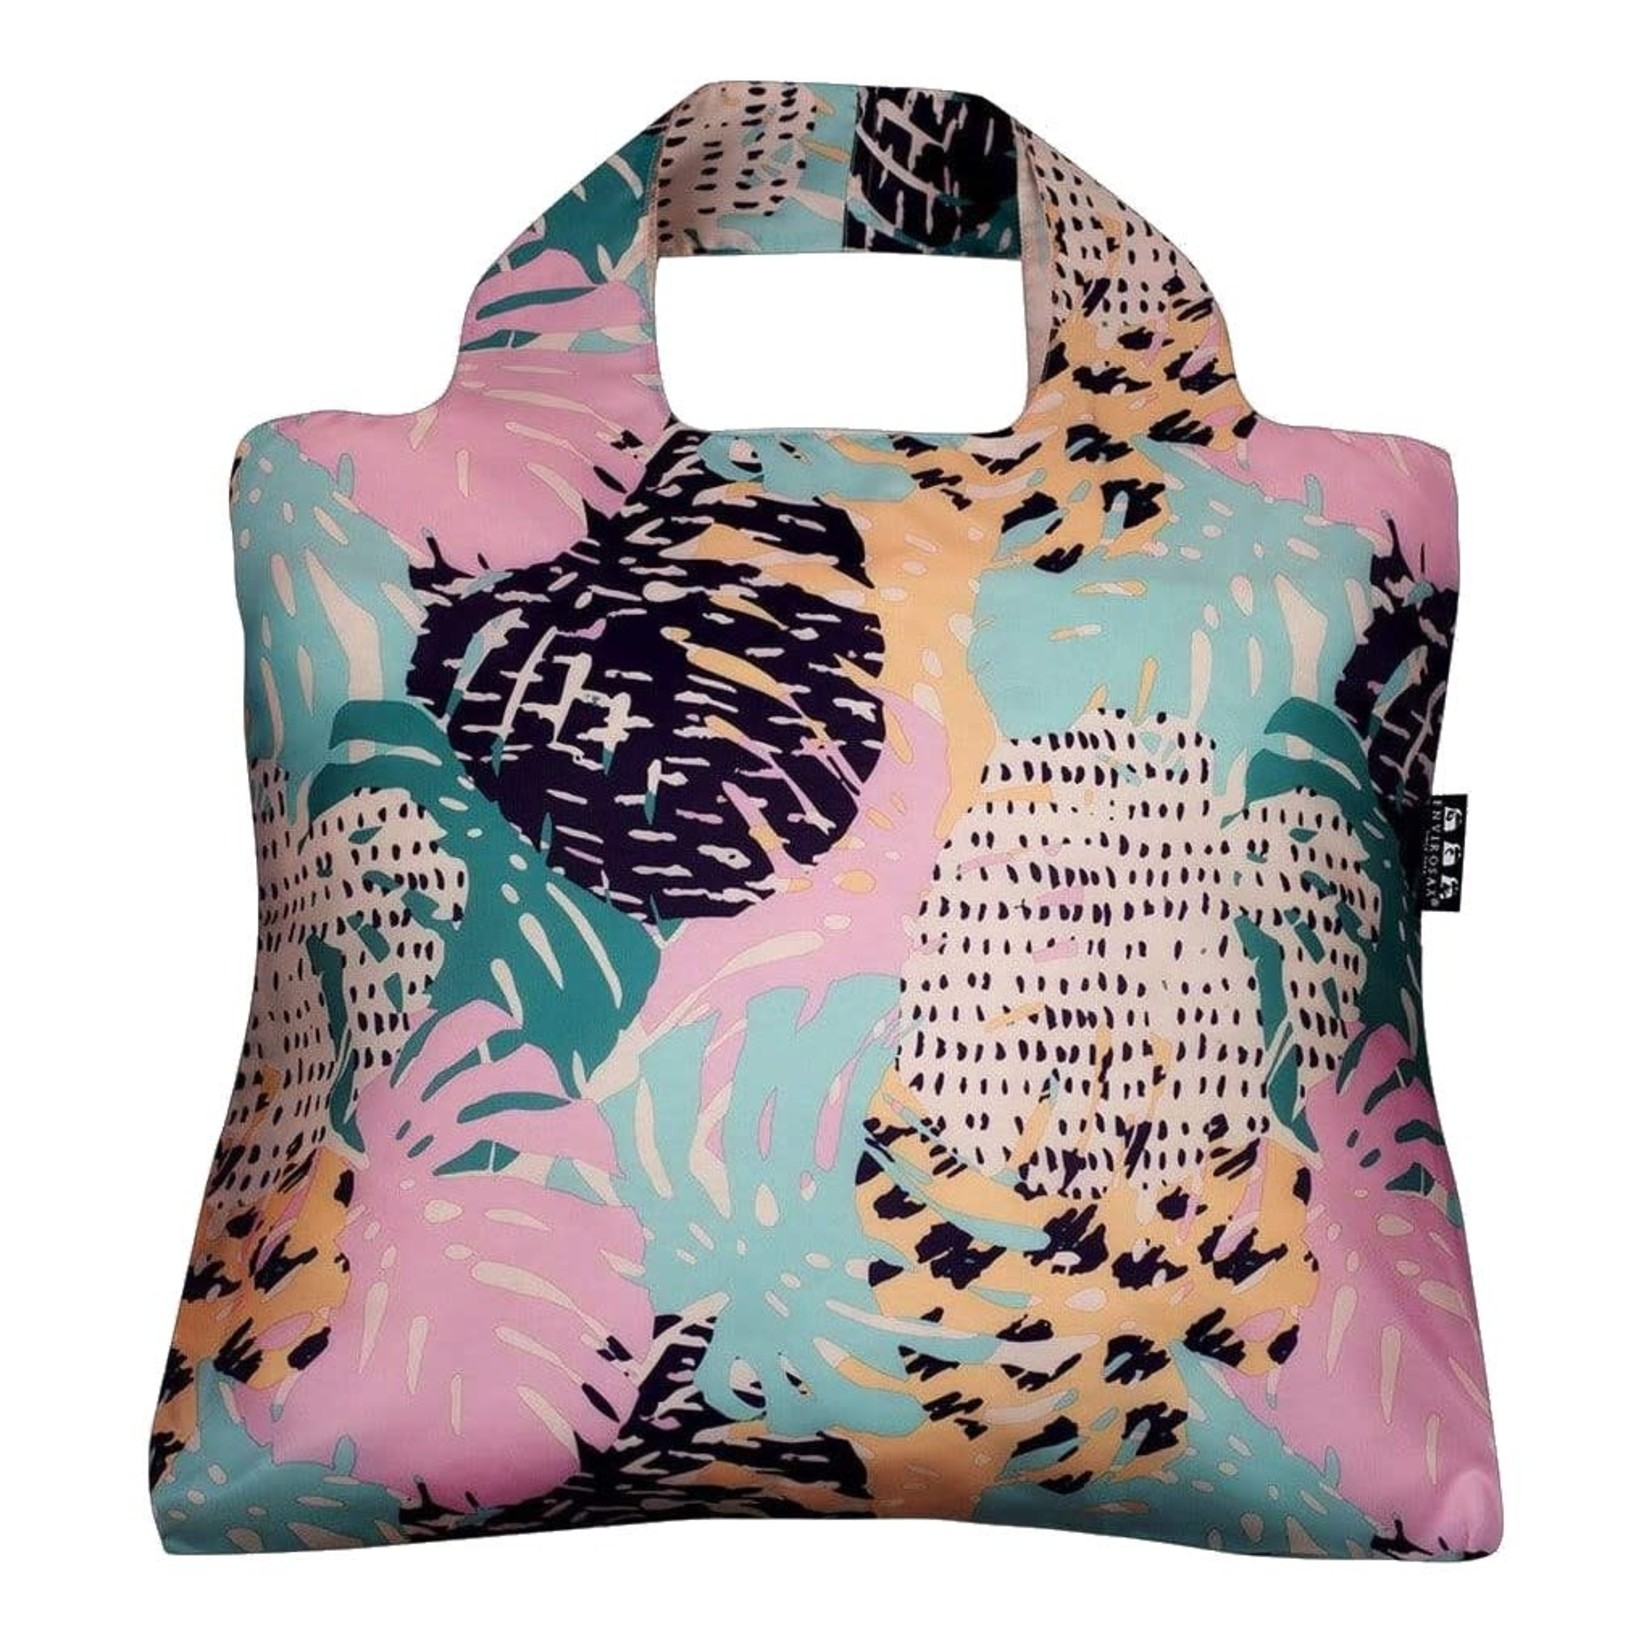 Envirosax Envirosax Palm Springs Bag: